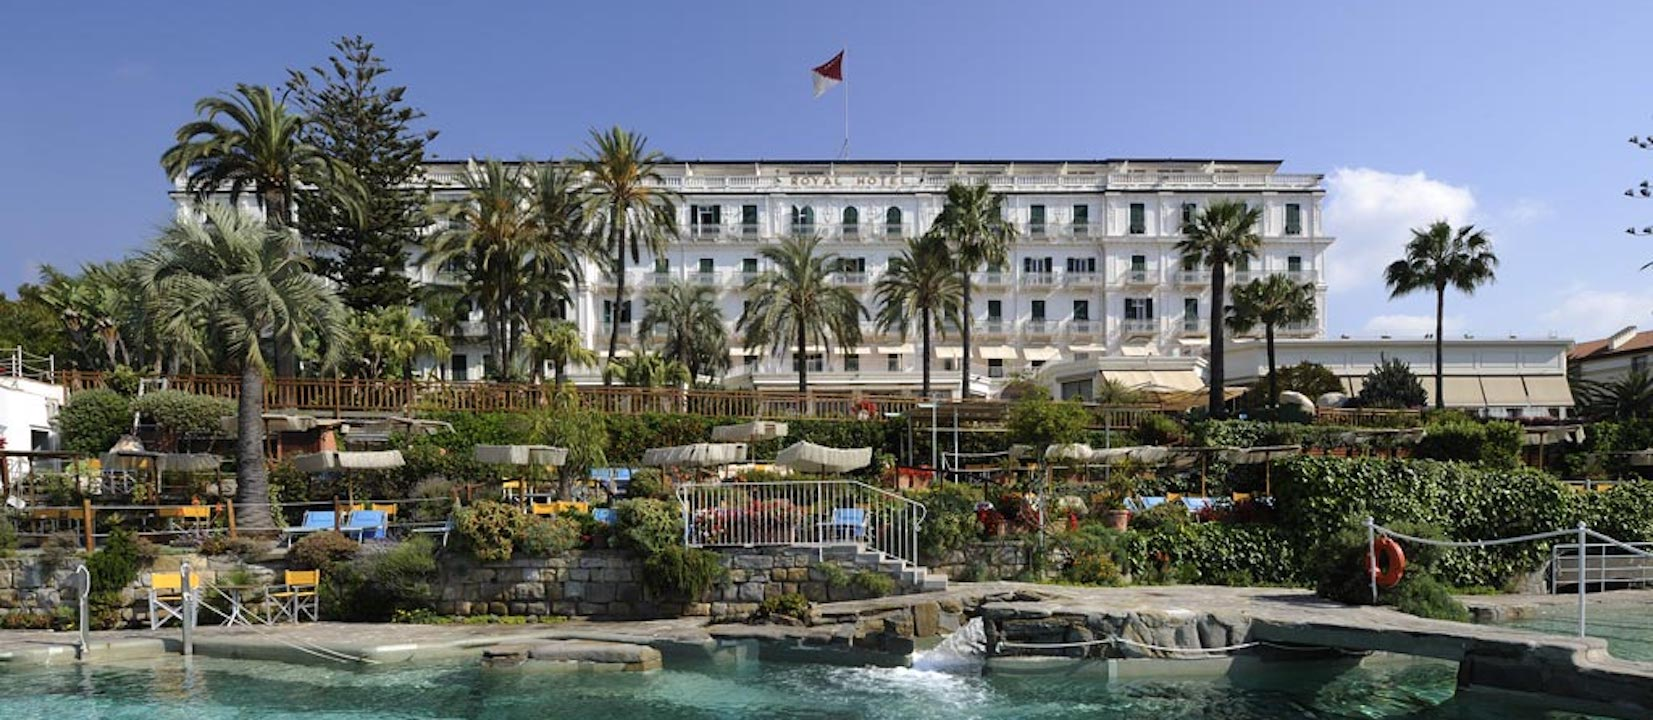 Royal Hotel , Sanremo / North Italy